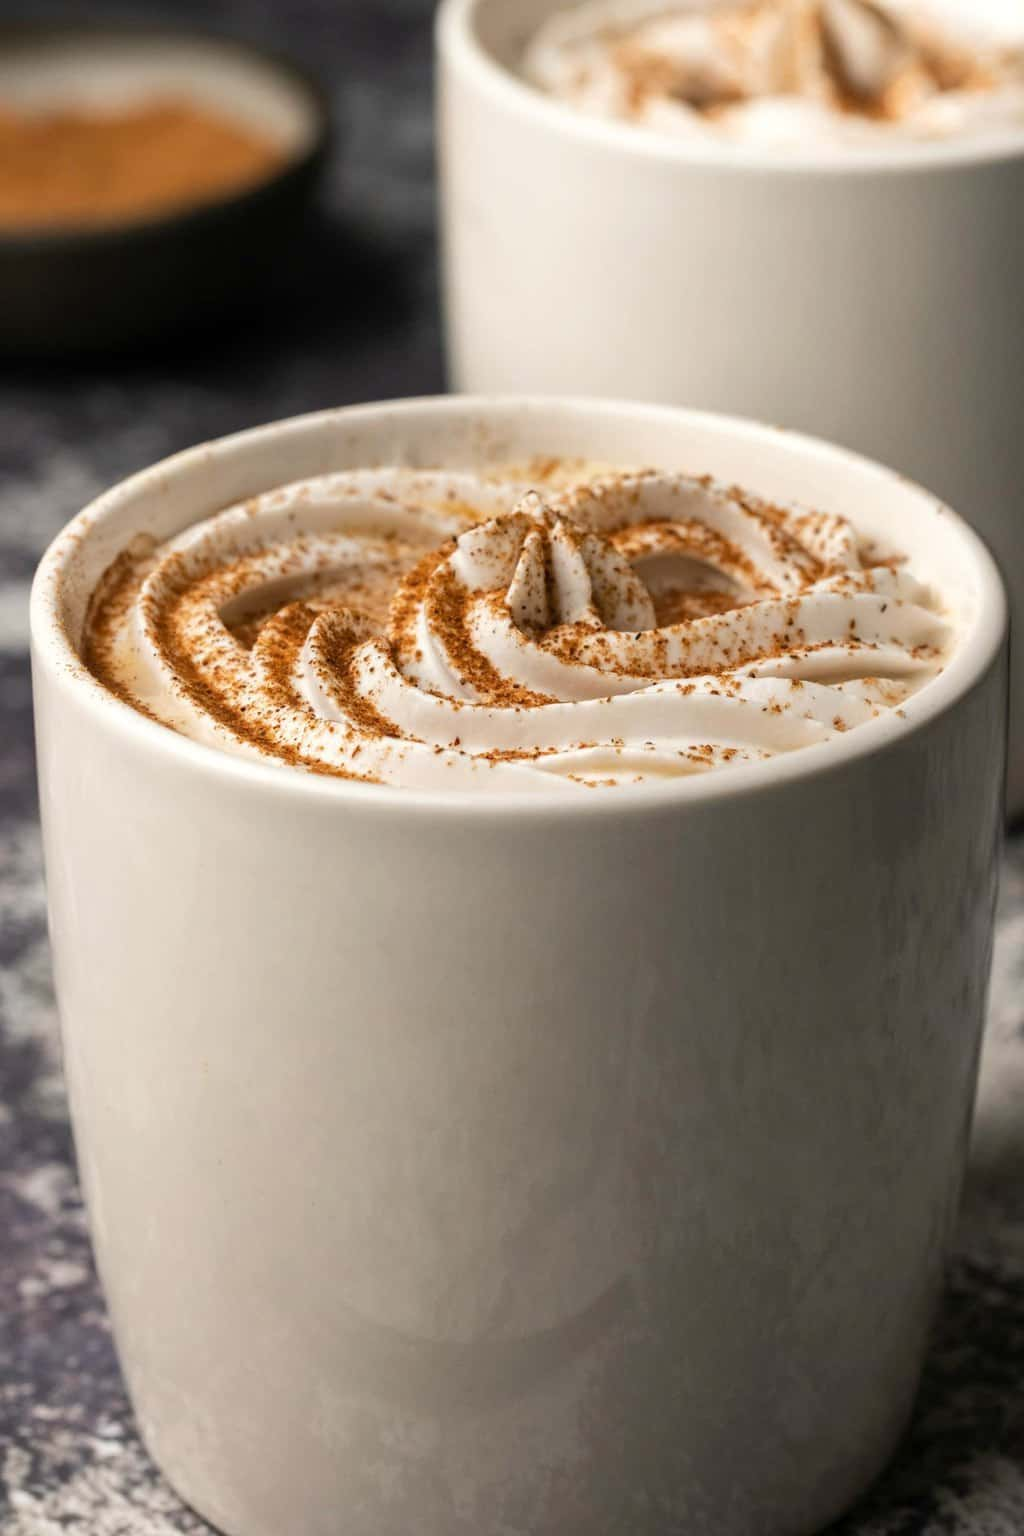 Vegan pumpkin spice latte in a white mug.